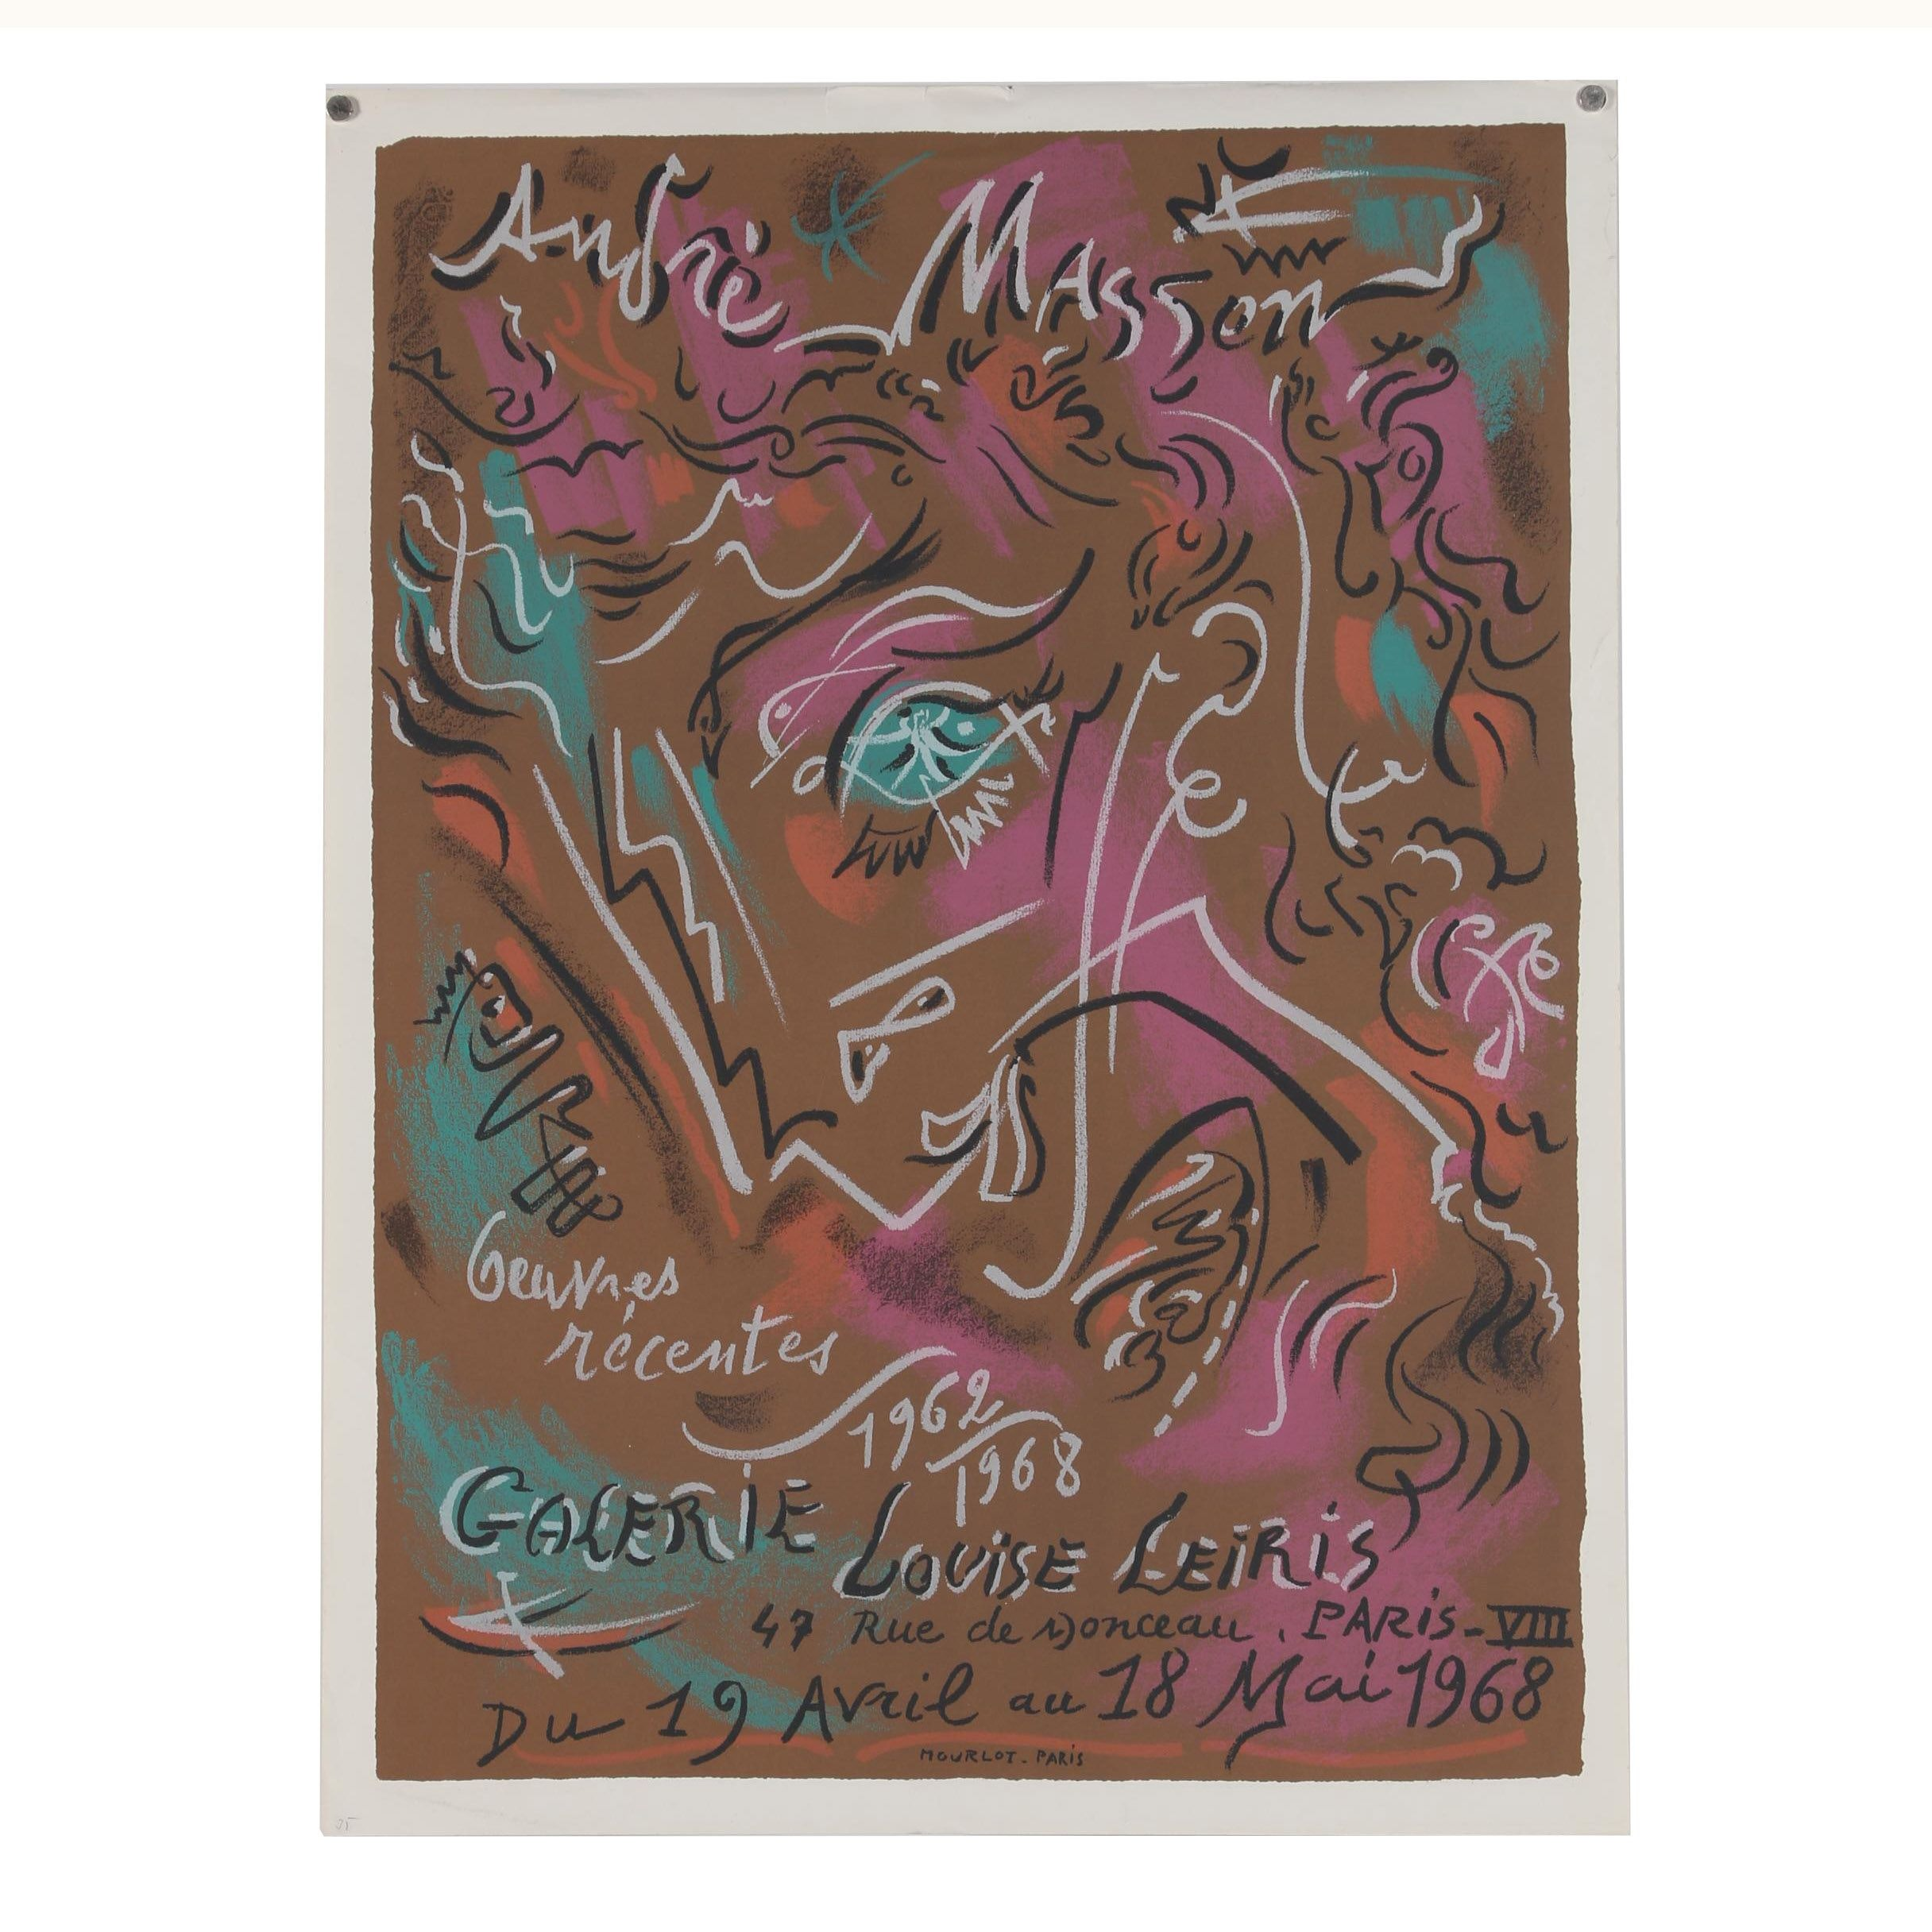 1968 Galerie Louise Leiris Color Lithograph Exhibition Poster after Andre Masson